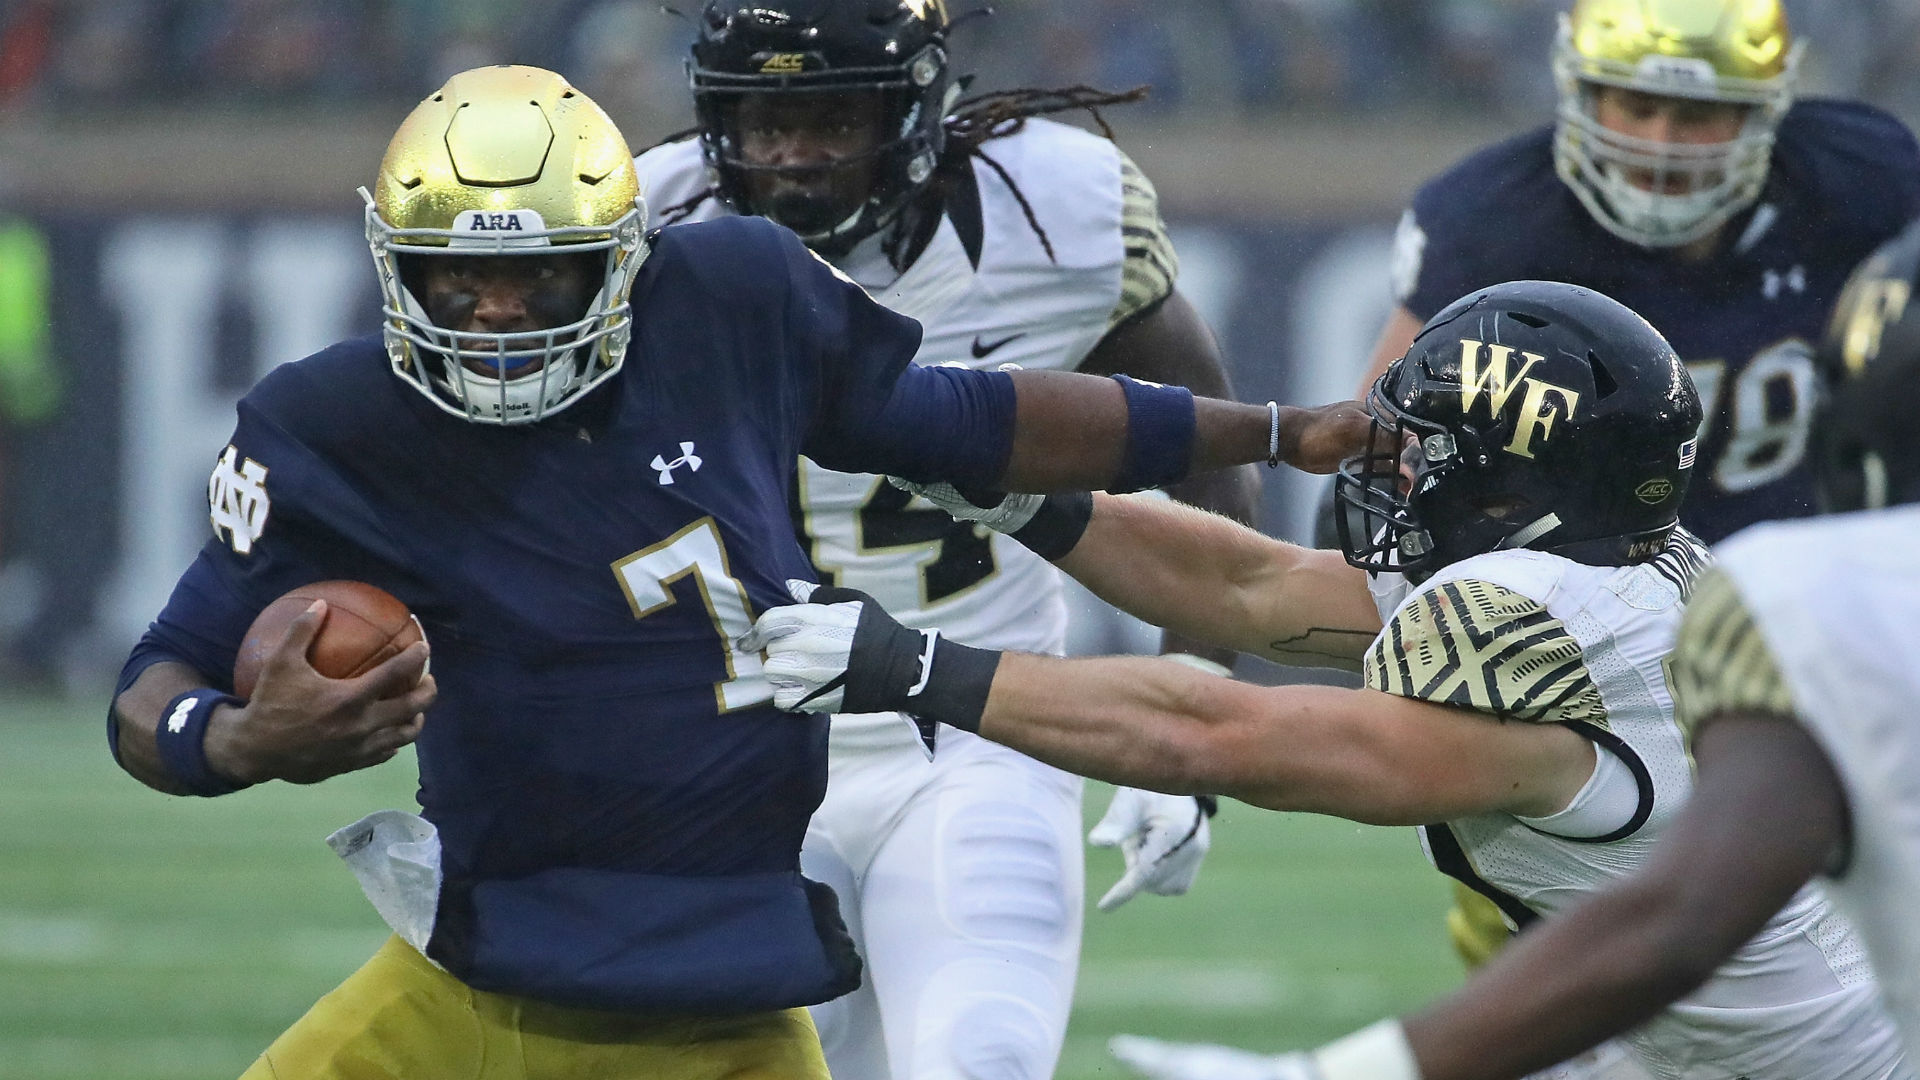 College football rankings: Notre Dame ahead of Oklahoma, Clemson for No. 3